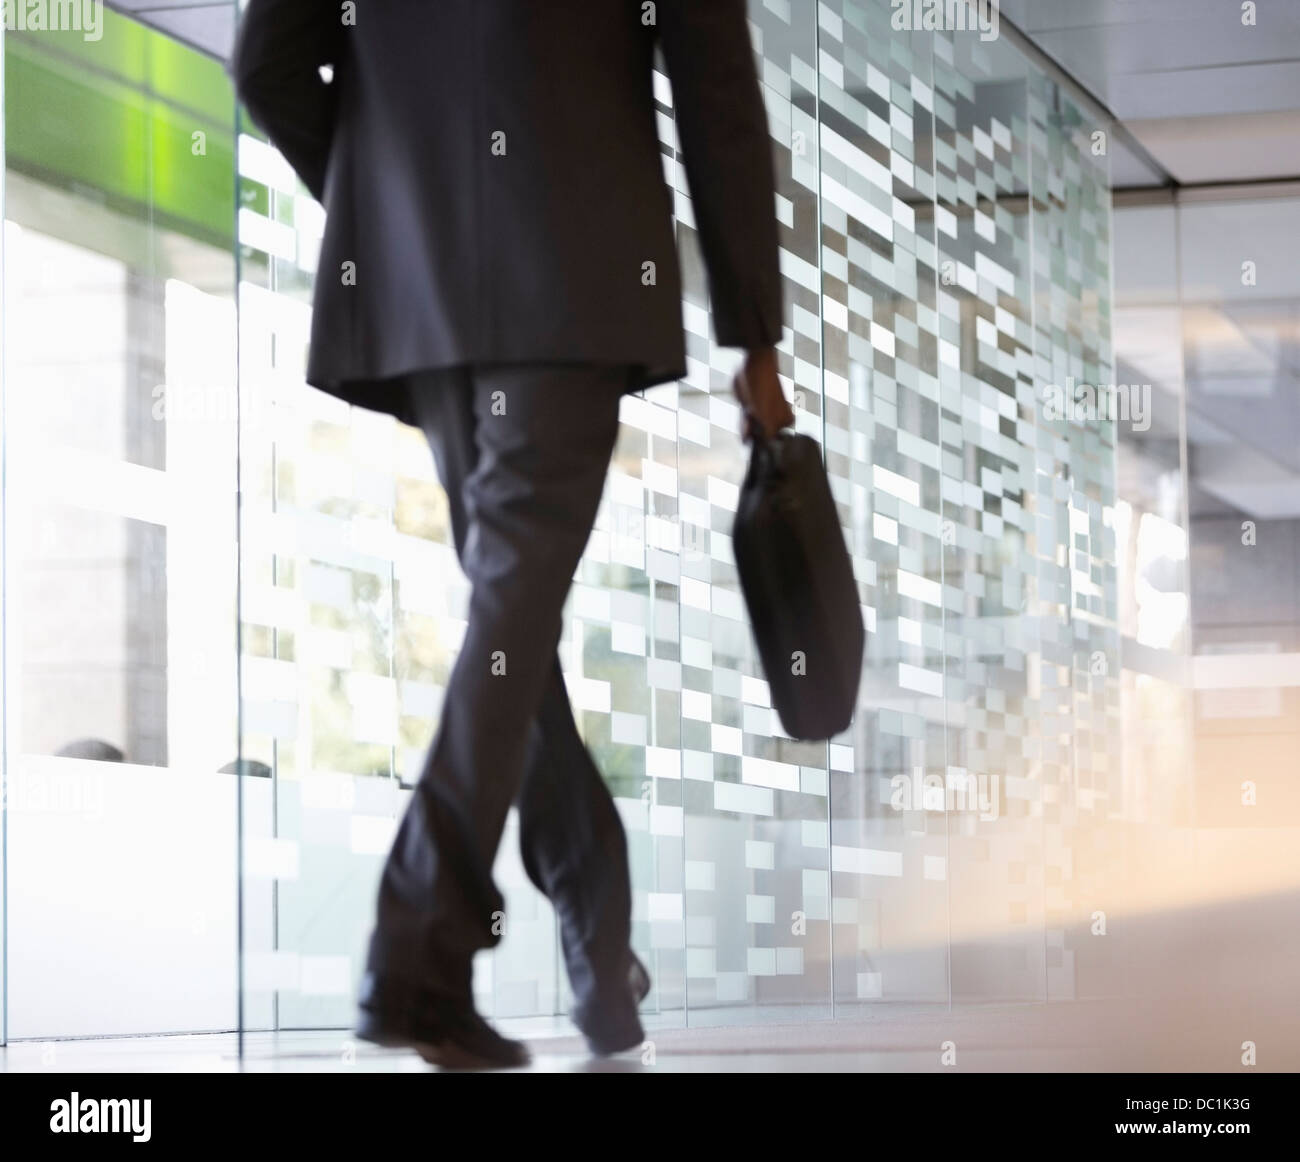 Businessman with briefcase walking in lobby - Stock Image